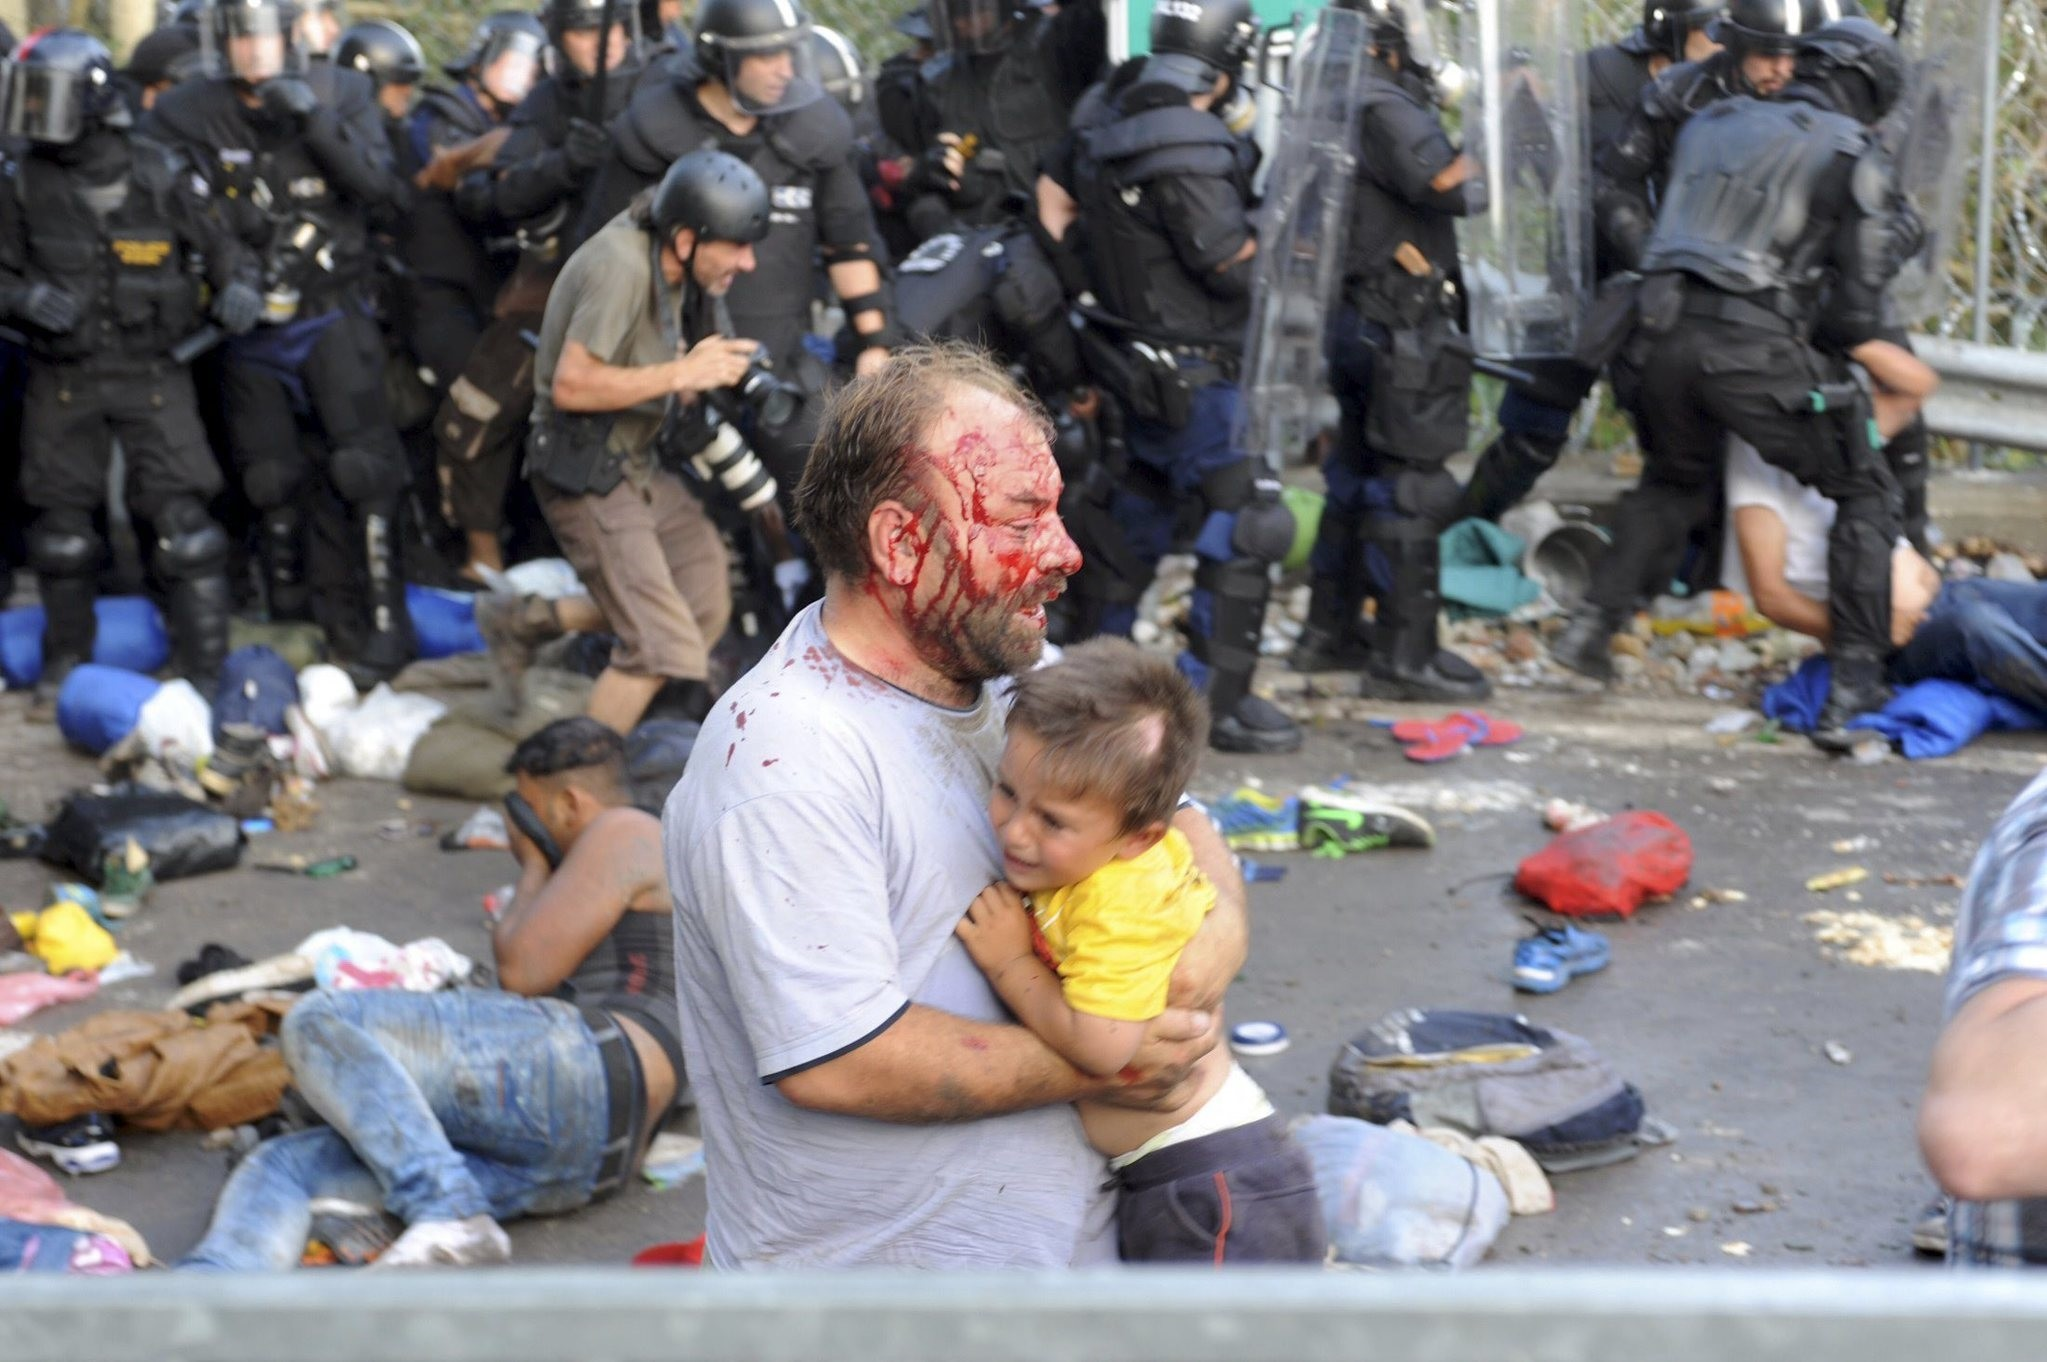 An injured migrant carries a child during clashes with Hungarian riot police at the border crossing with Serbia in Roszke, Hungary September 16, 2015. (Reuters Photo)